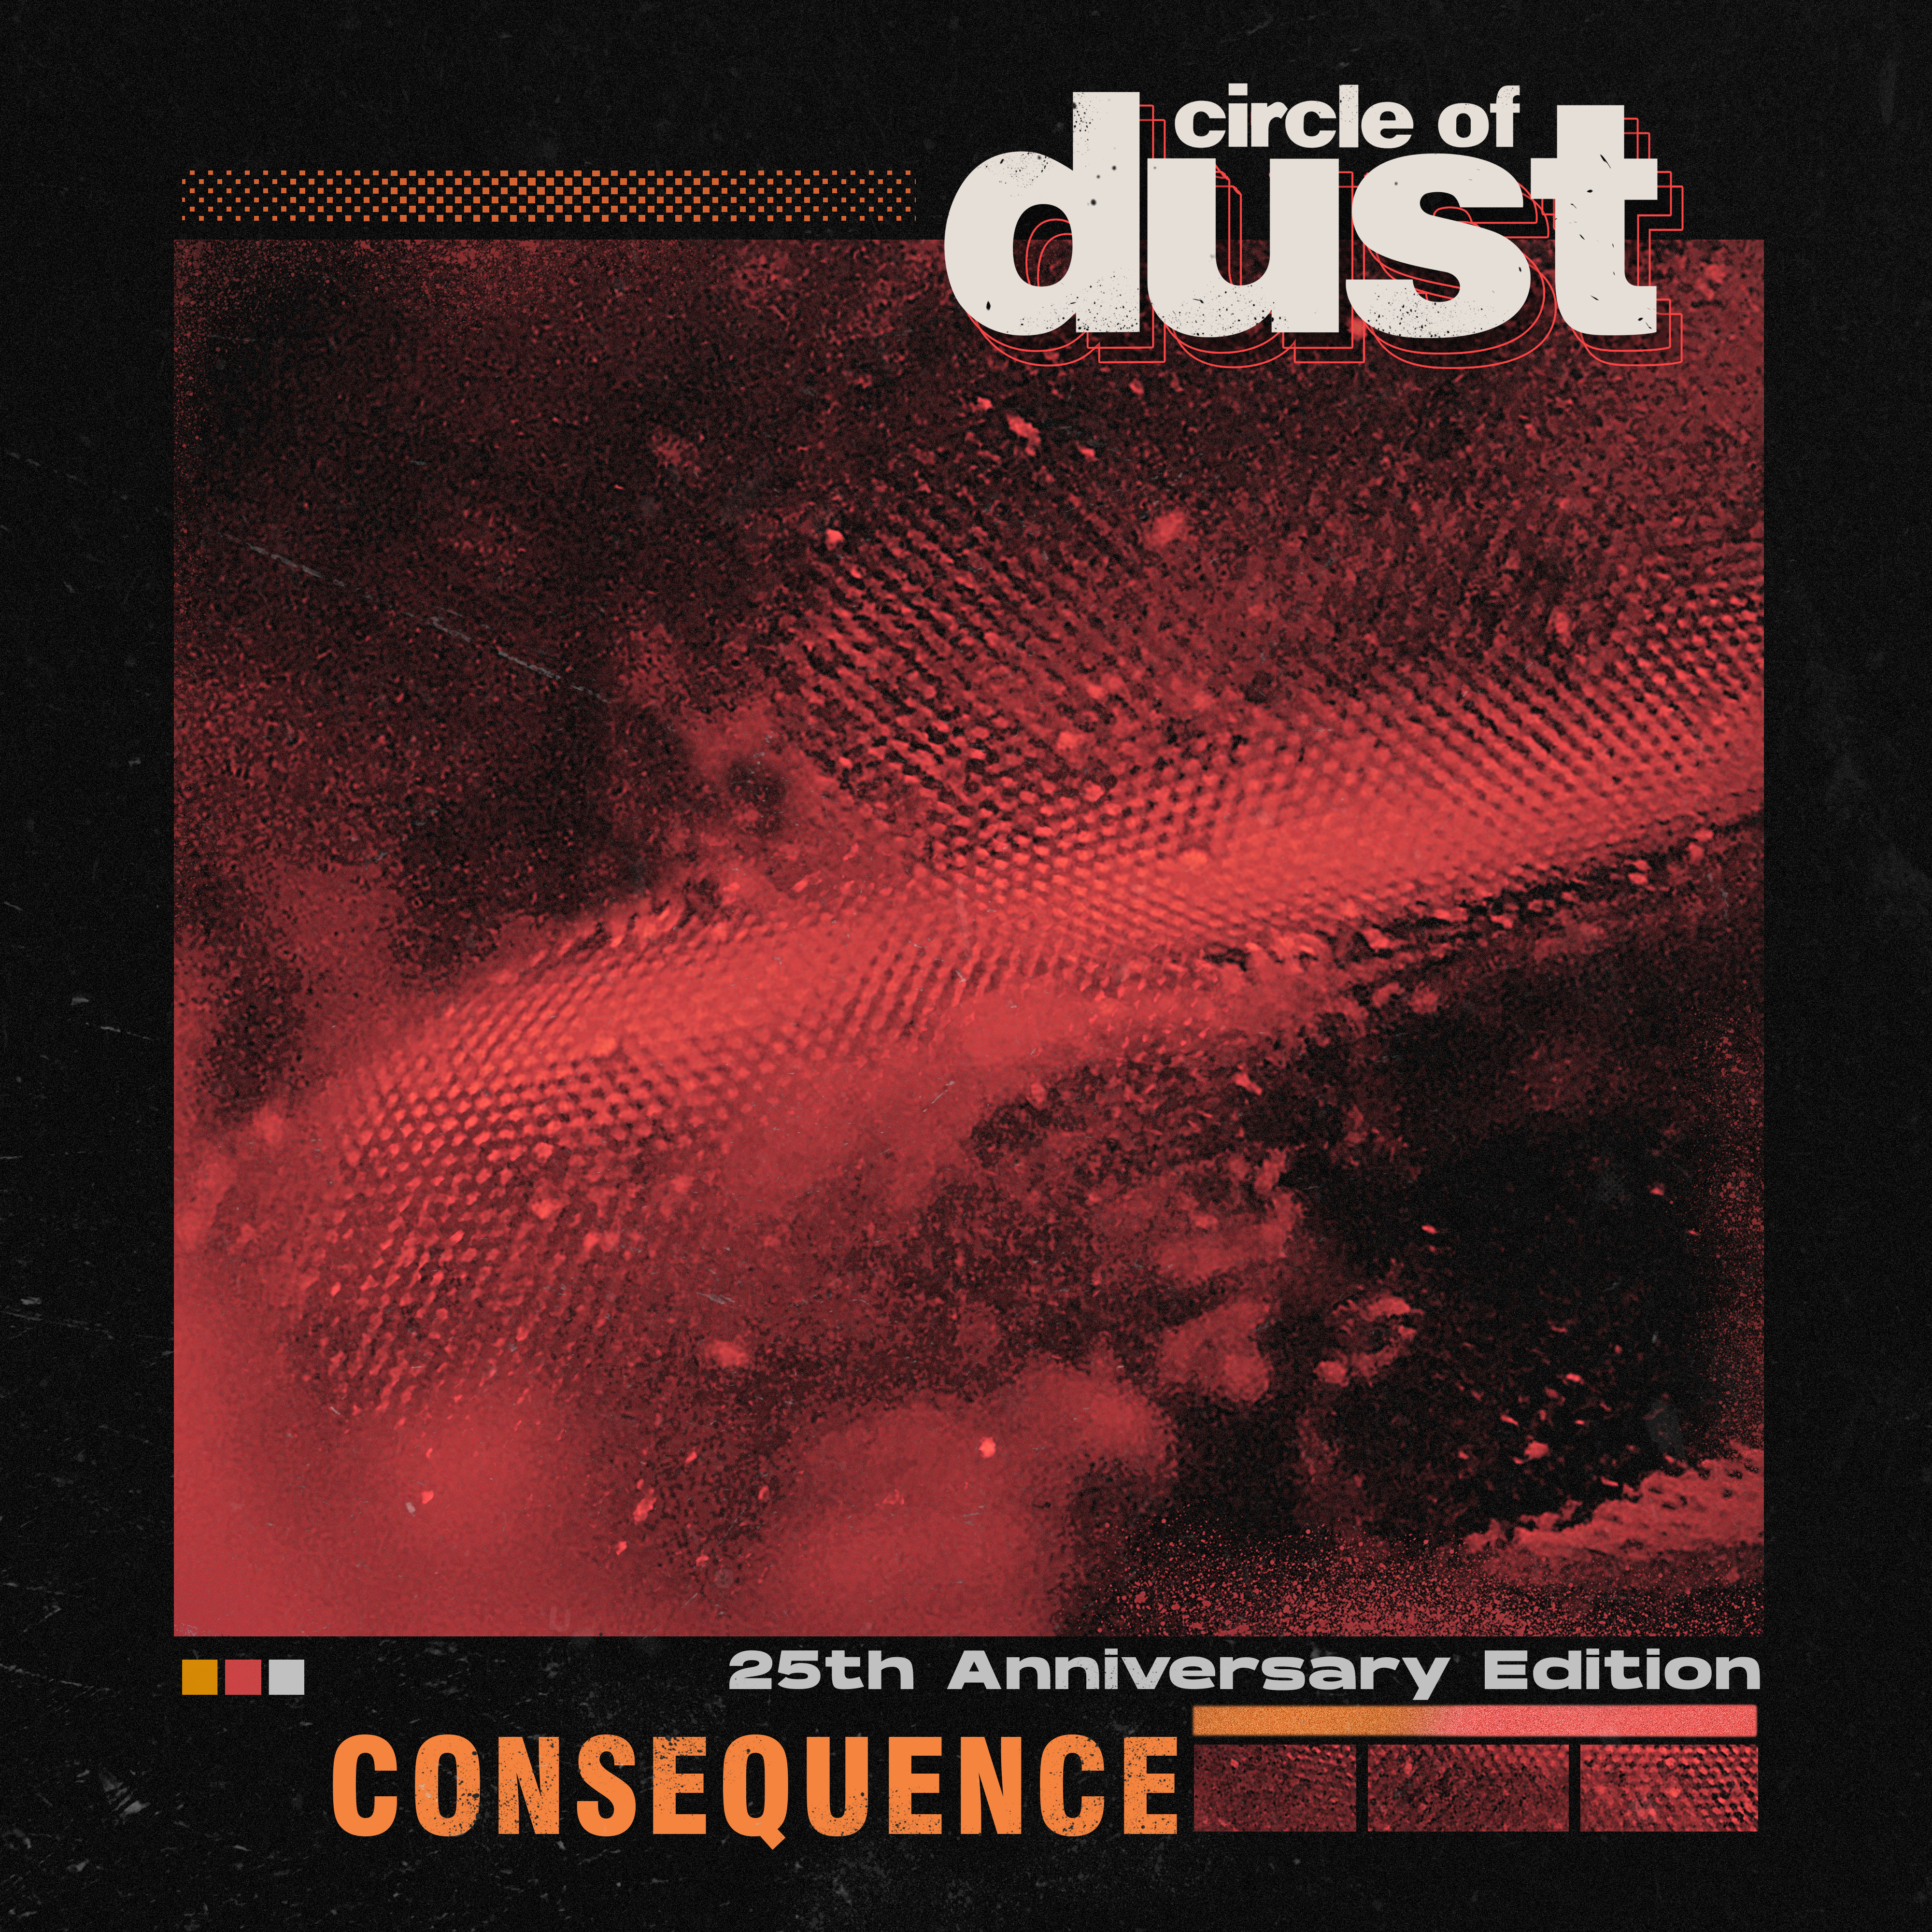 Circle of Dust - Consequence (25th Anniversary Mix) [Single] Image